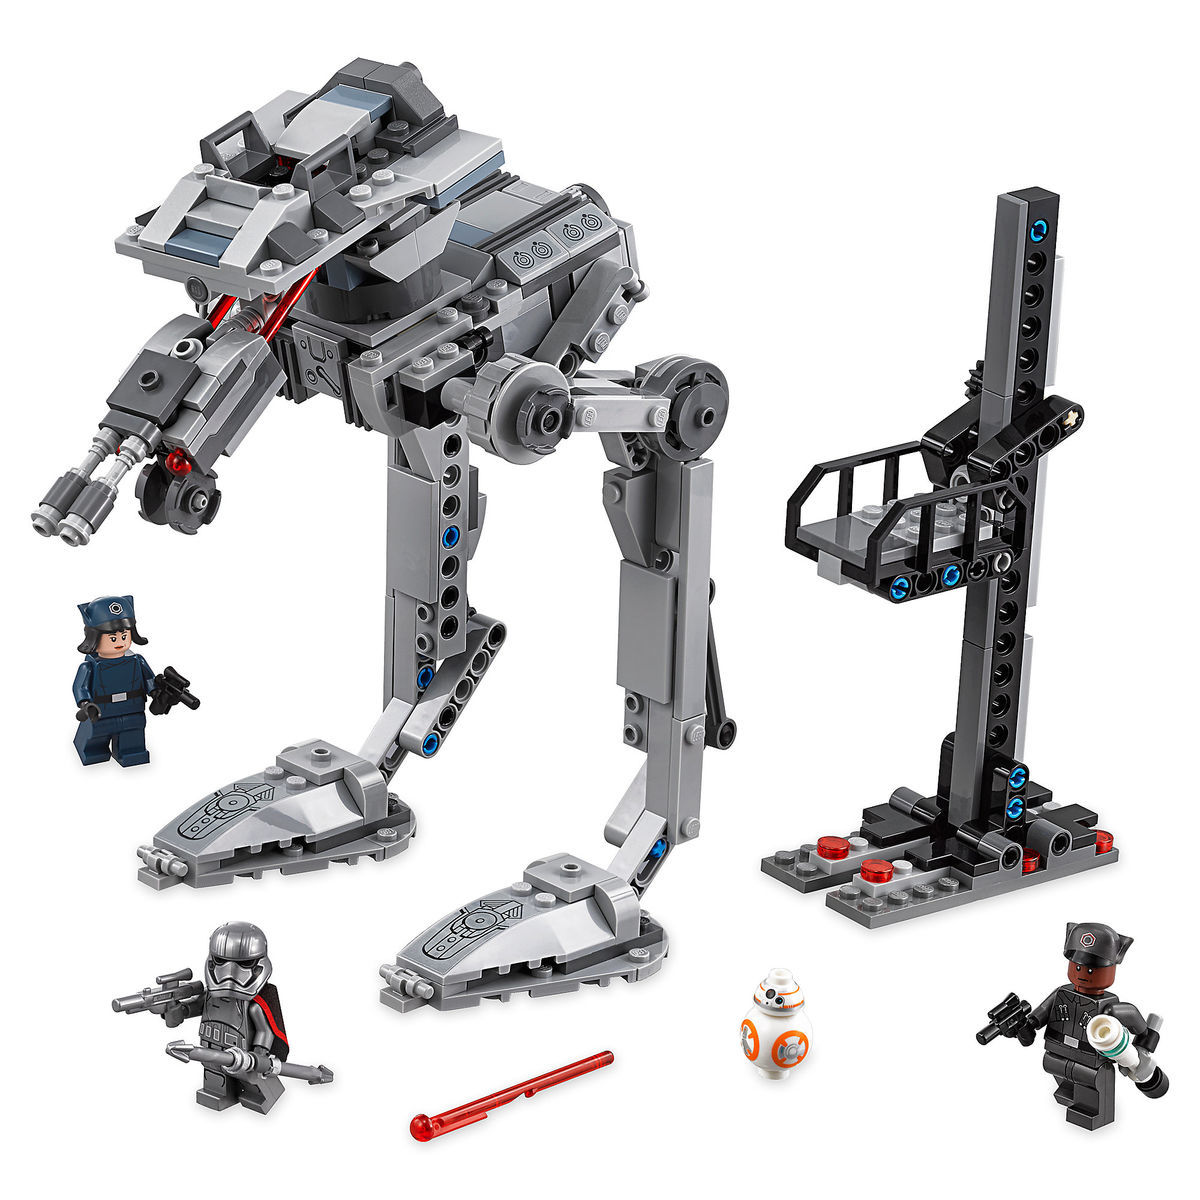 Product Image of First Order AT-ST Playset by LEGO - Star Wars  The 86ed4ca2a3